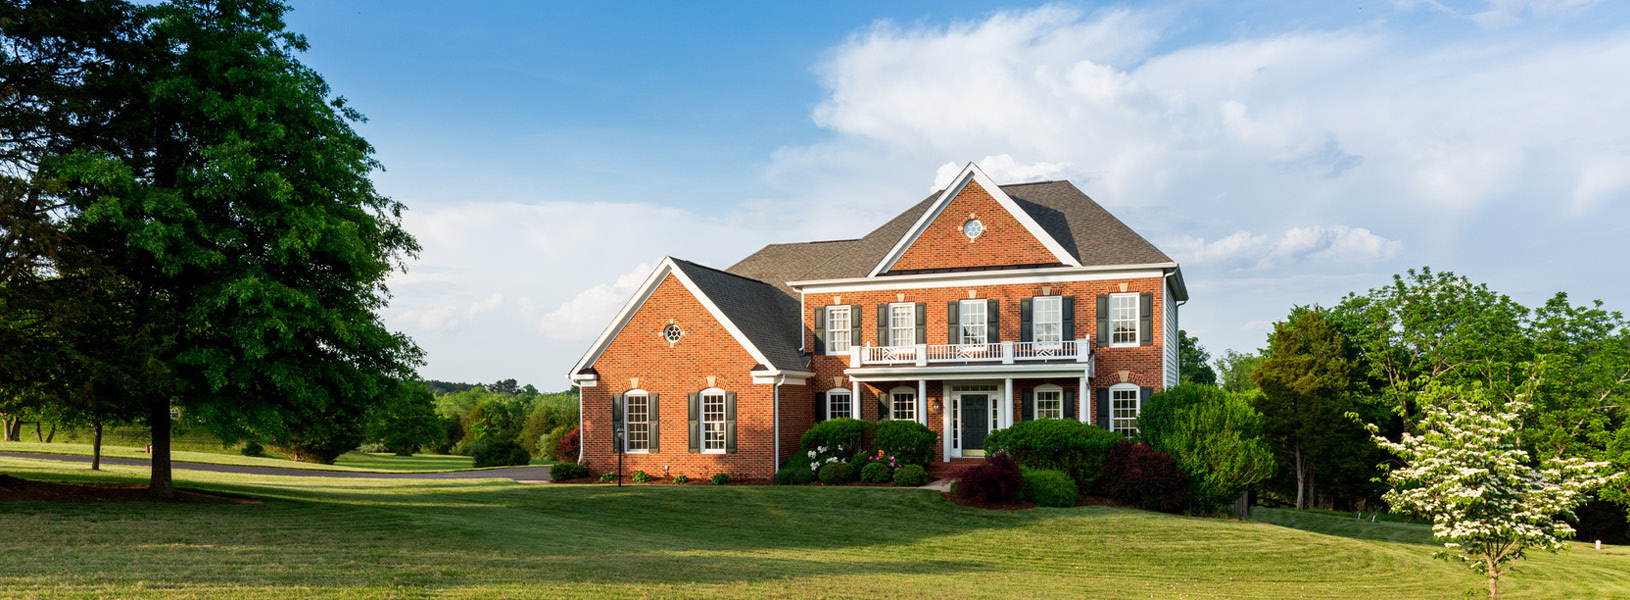 FSBO Agreement of Sale | Home Sale Services, Inc | FSBO Legal Assistance